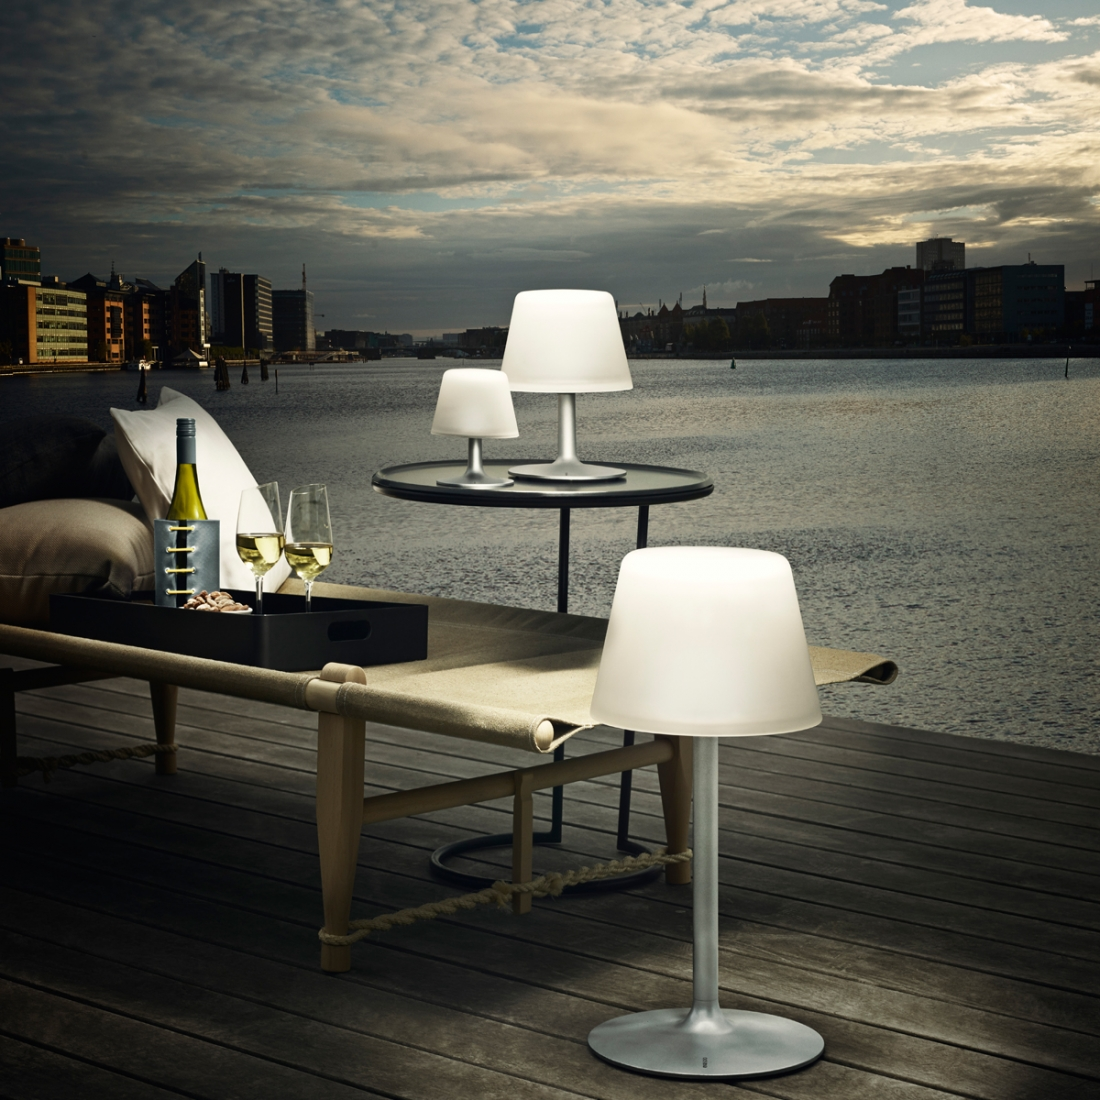 lampe de table solaire sunlight par eva solo. Black Bedroom Furniture Sets. Home Design Ideas